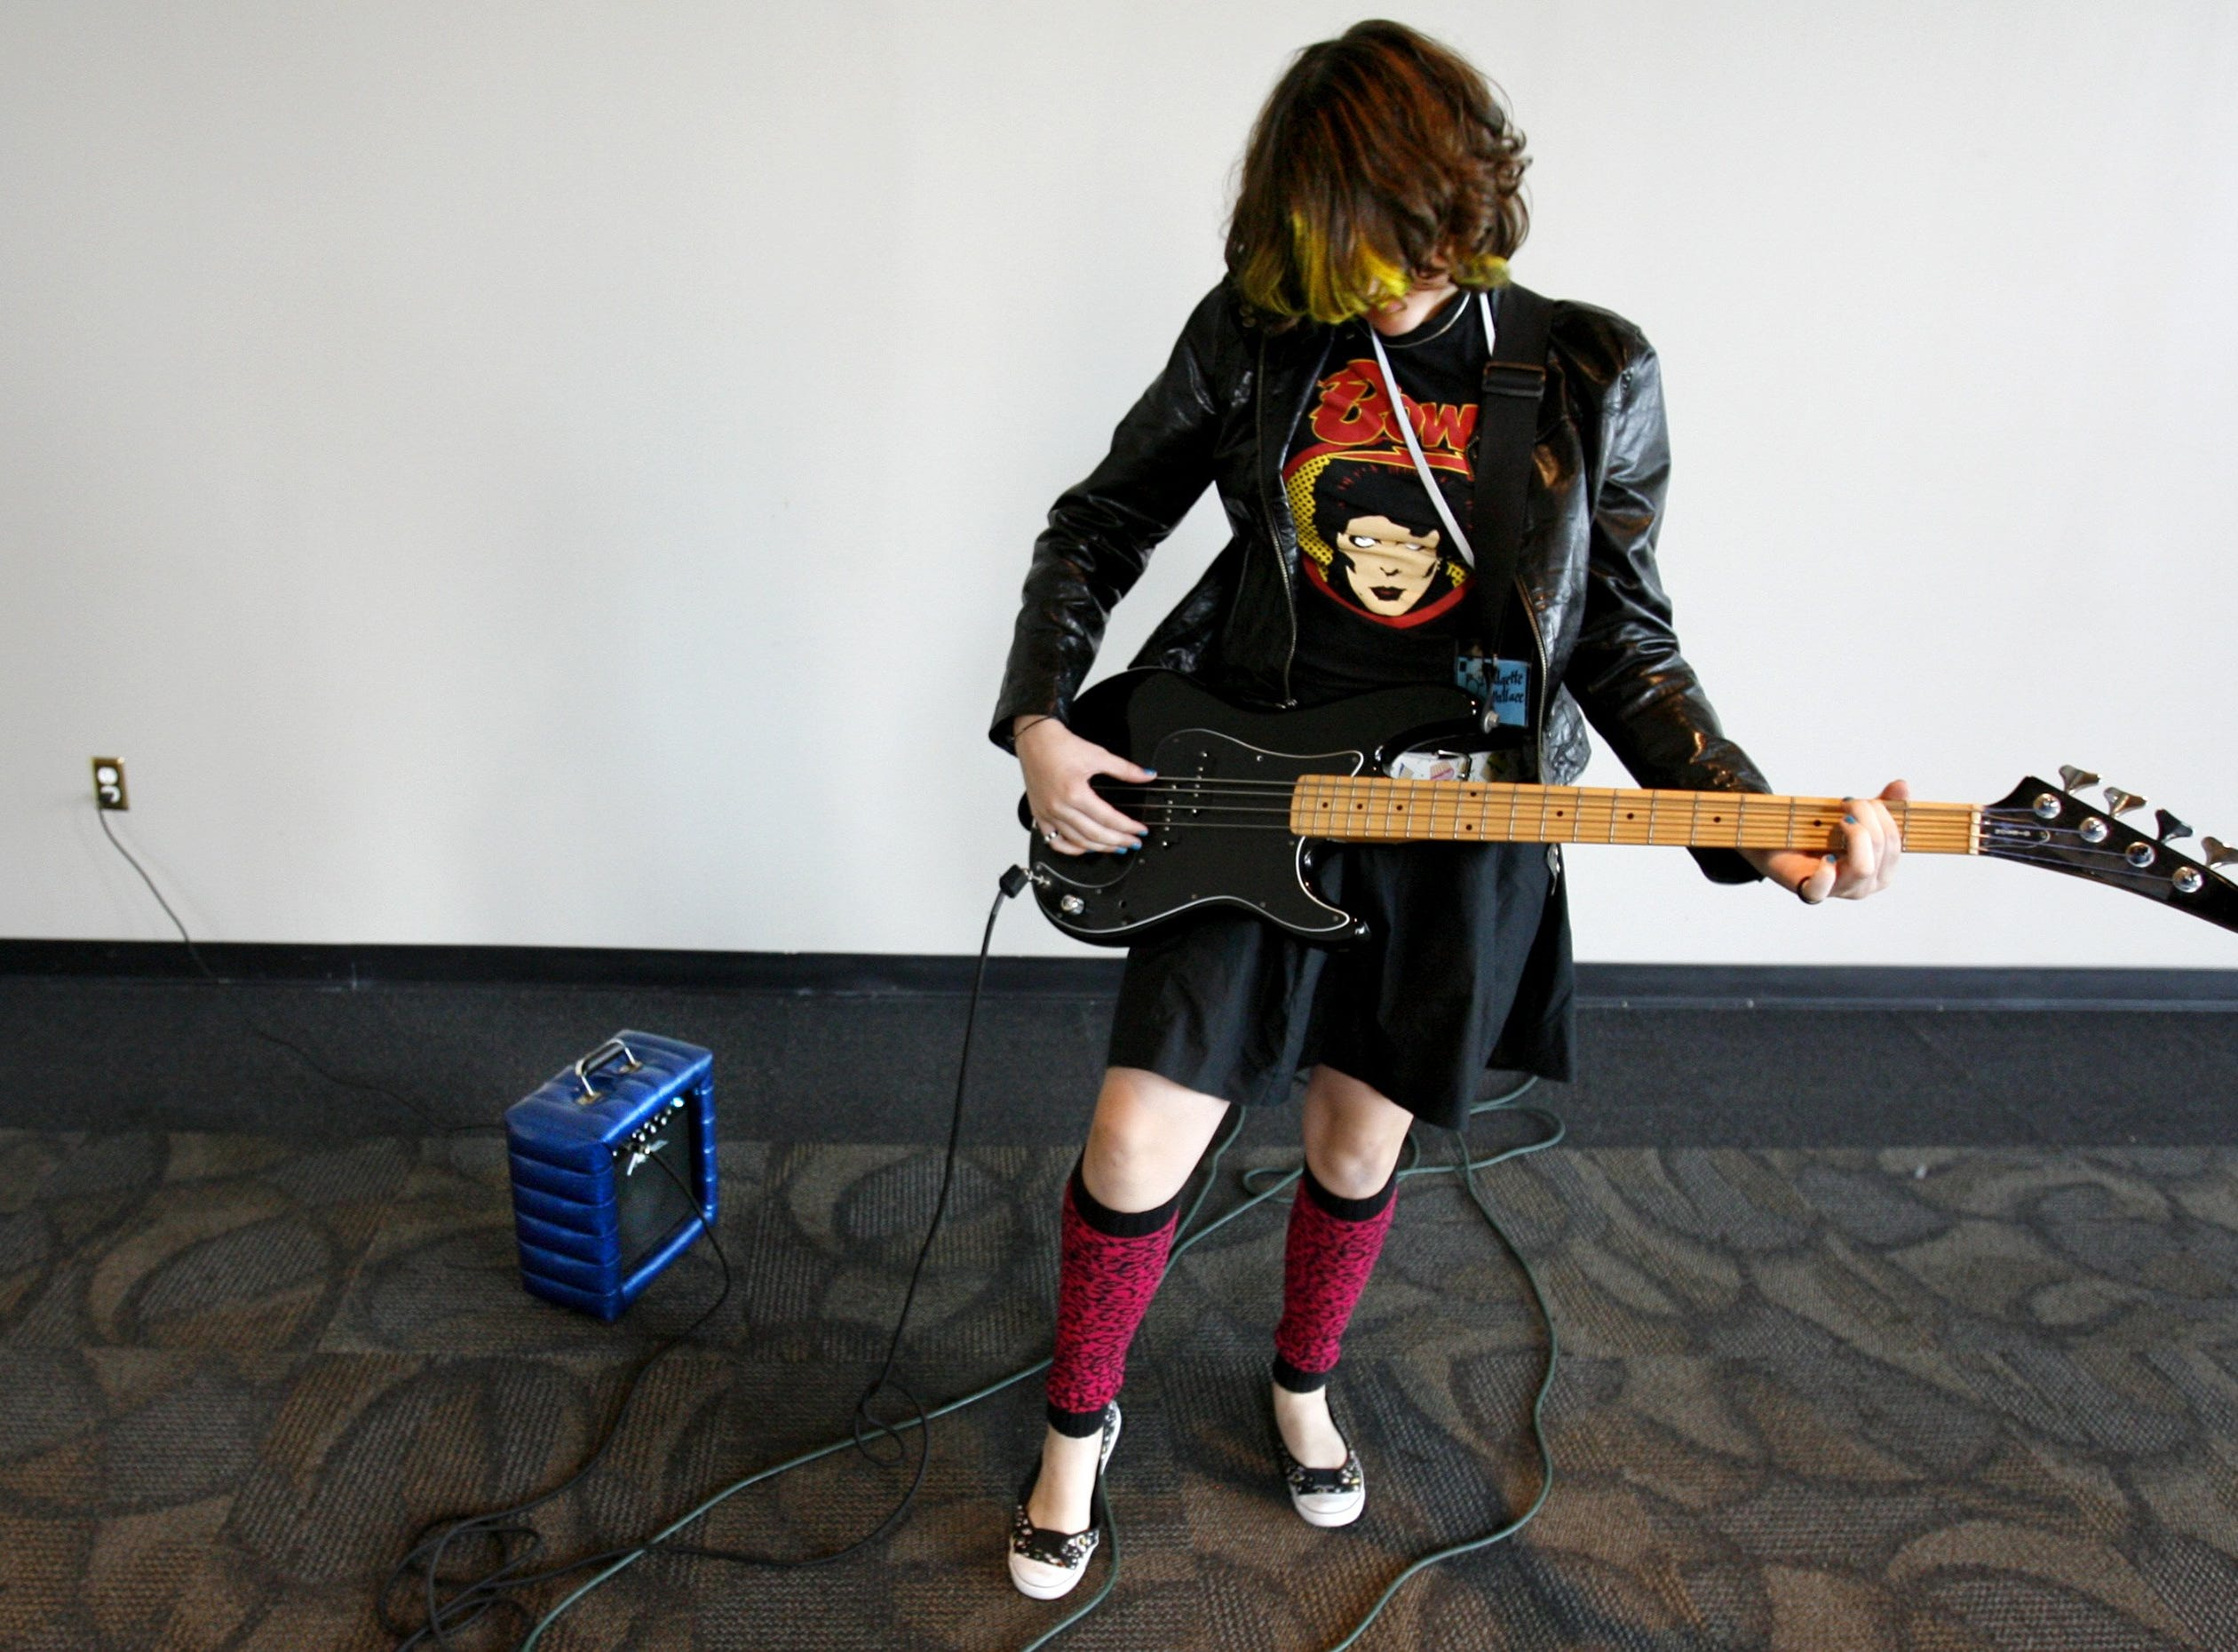 June 18, 2007 - Midtown resident Bridgette Wallace, 14, messes around on a bass guitar on the first day of the Southern Girls Rock & Roll Camp being held at the Gibson Guitar Factory.